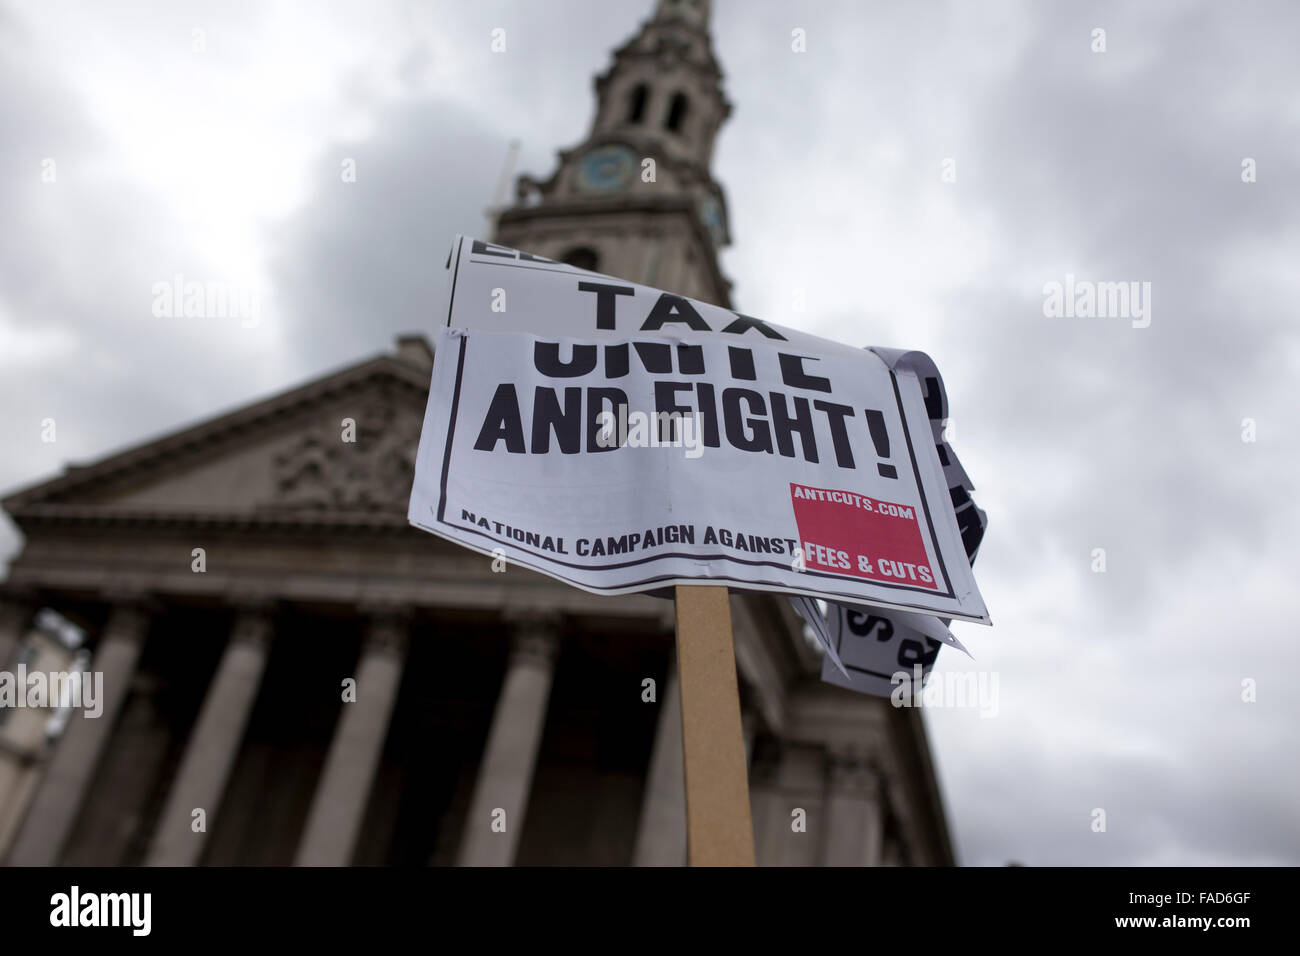 Anti-austerity sign in London with St. Martin-in-the-Fields church in the background. - Stock Image